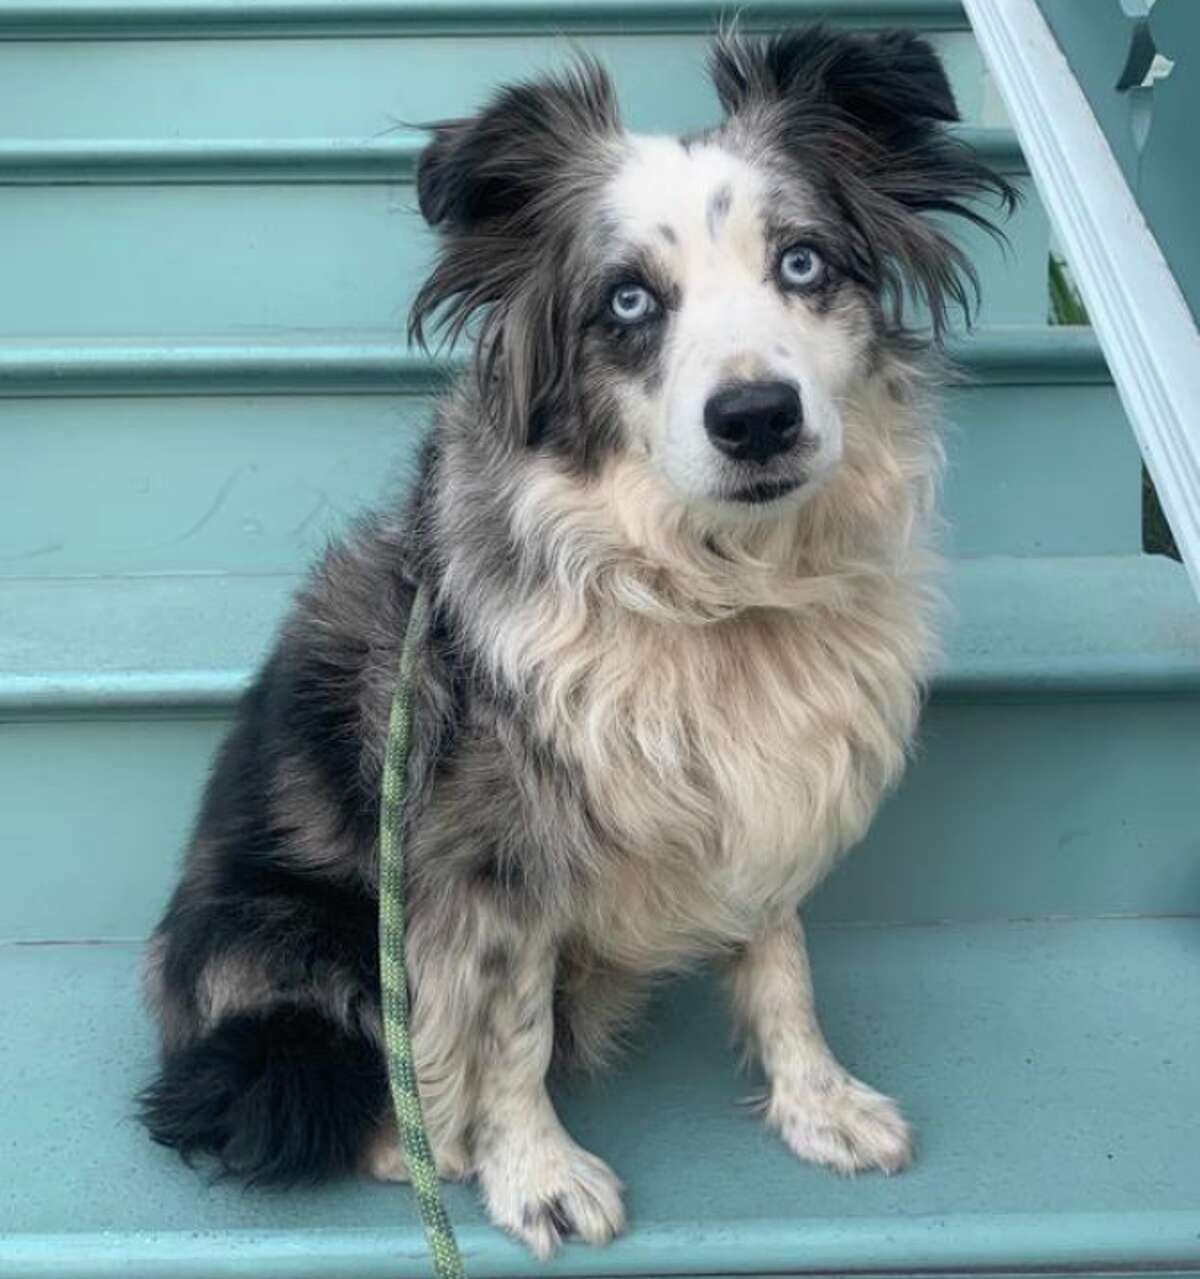 A lost dog, Jackson, who was stolen outside of The Good Life Grocery store in Bernal Heights back in December, was found at an animal shelter in Los Angeles on Monday.